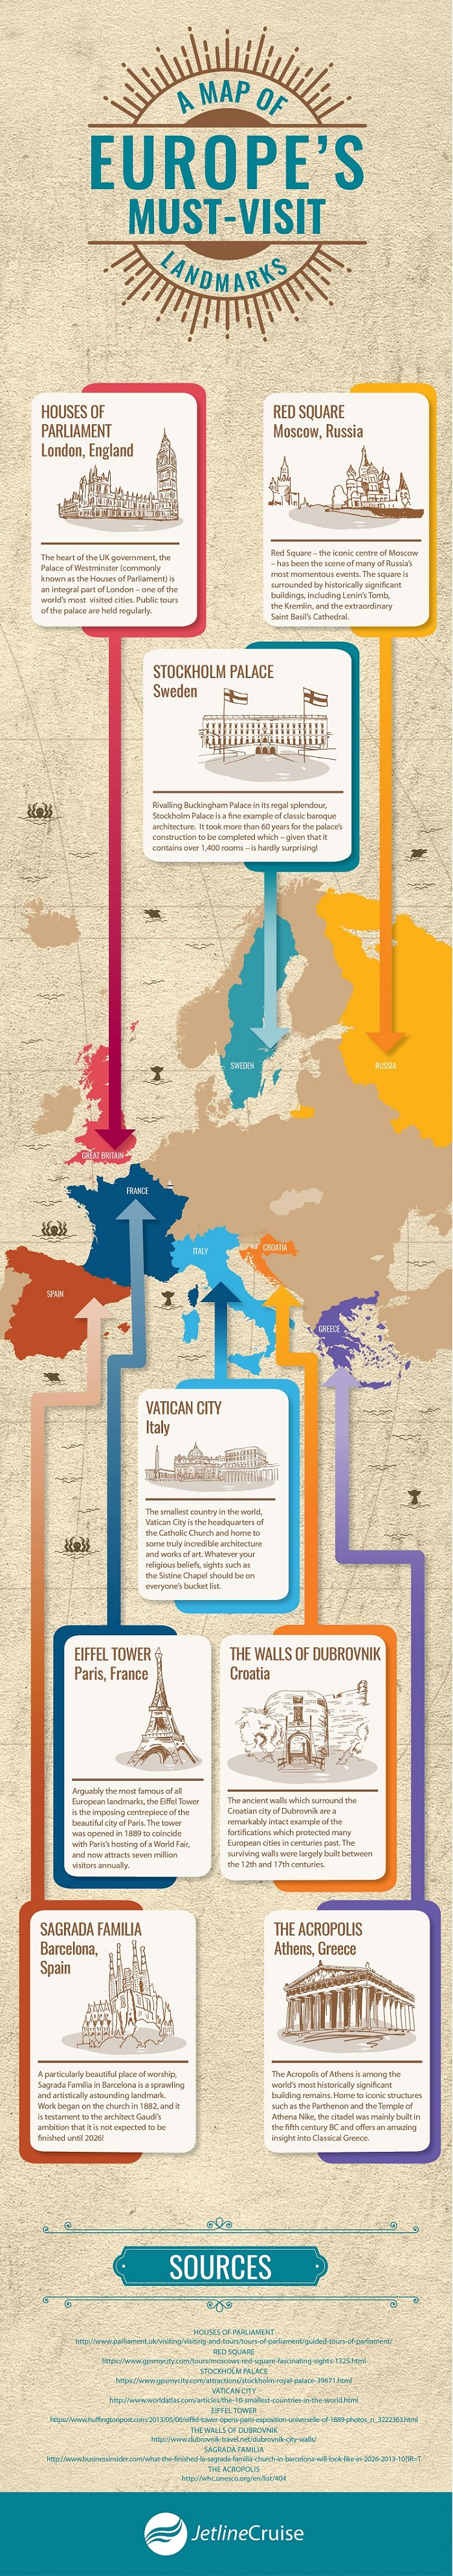 A map of Europe's must-visit landmarks